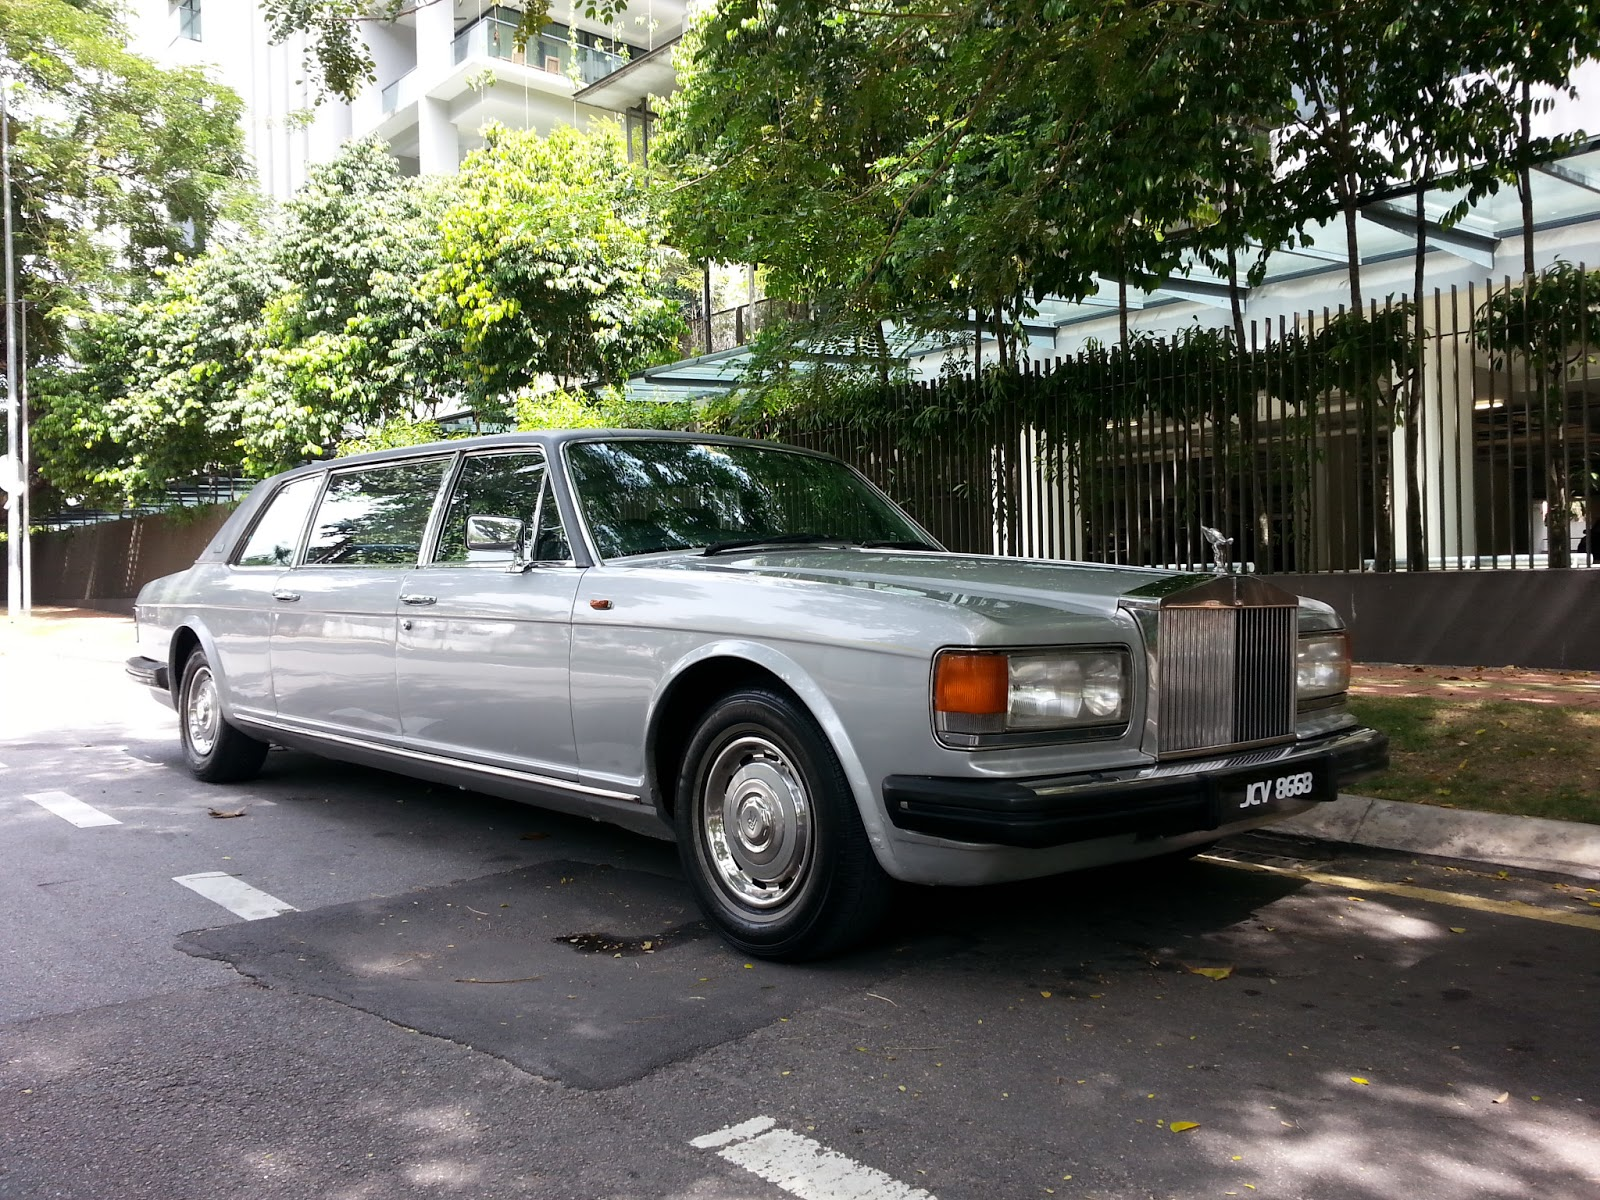 RedOrca Malaysia Wedding And Event Car Rental Rolls Royce Limousine Rental In June